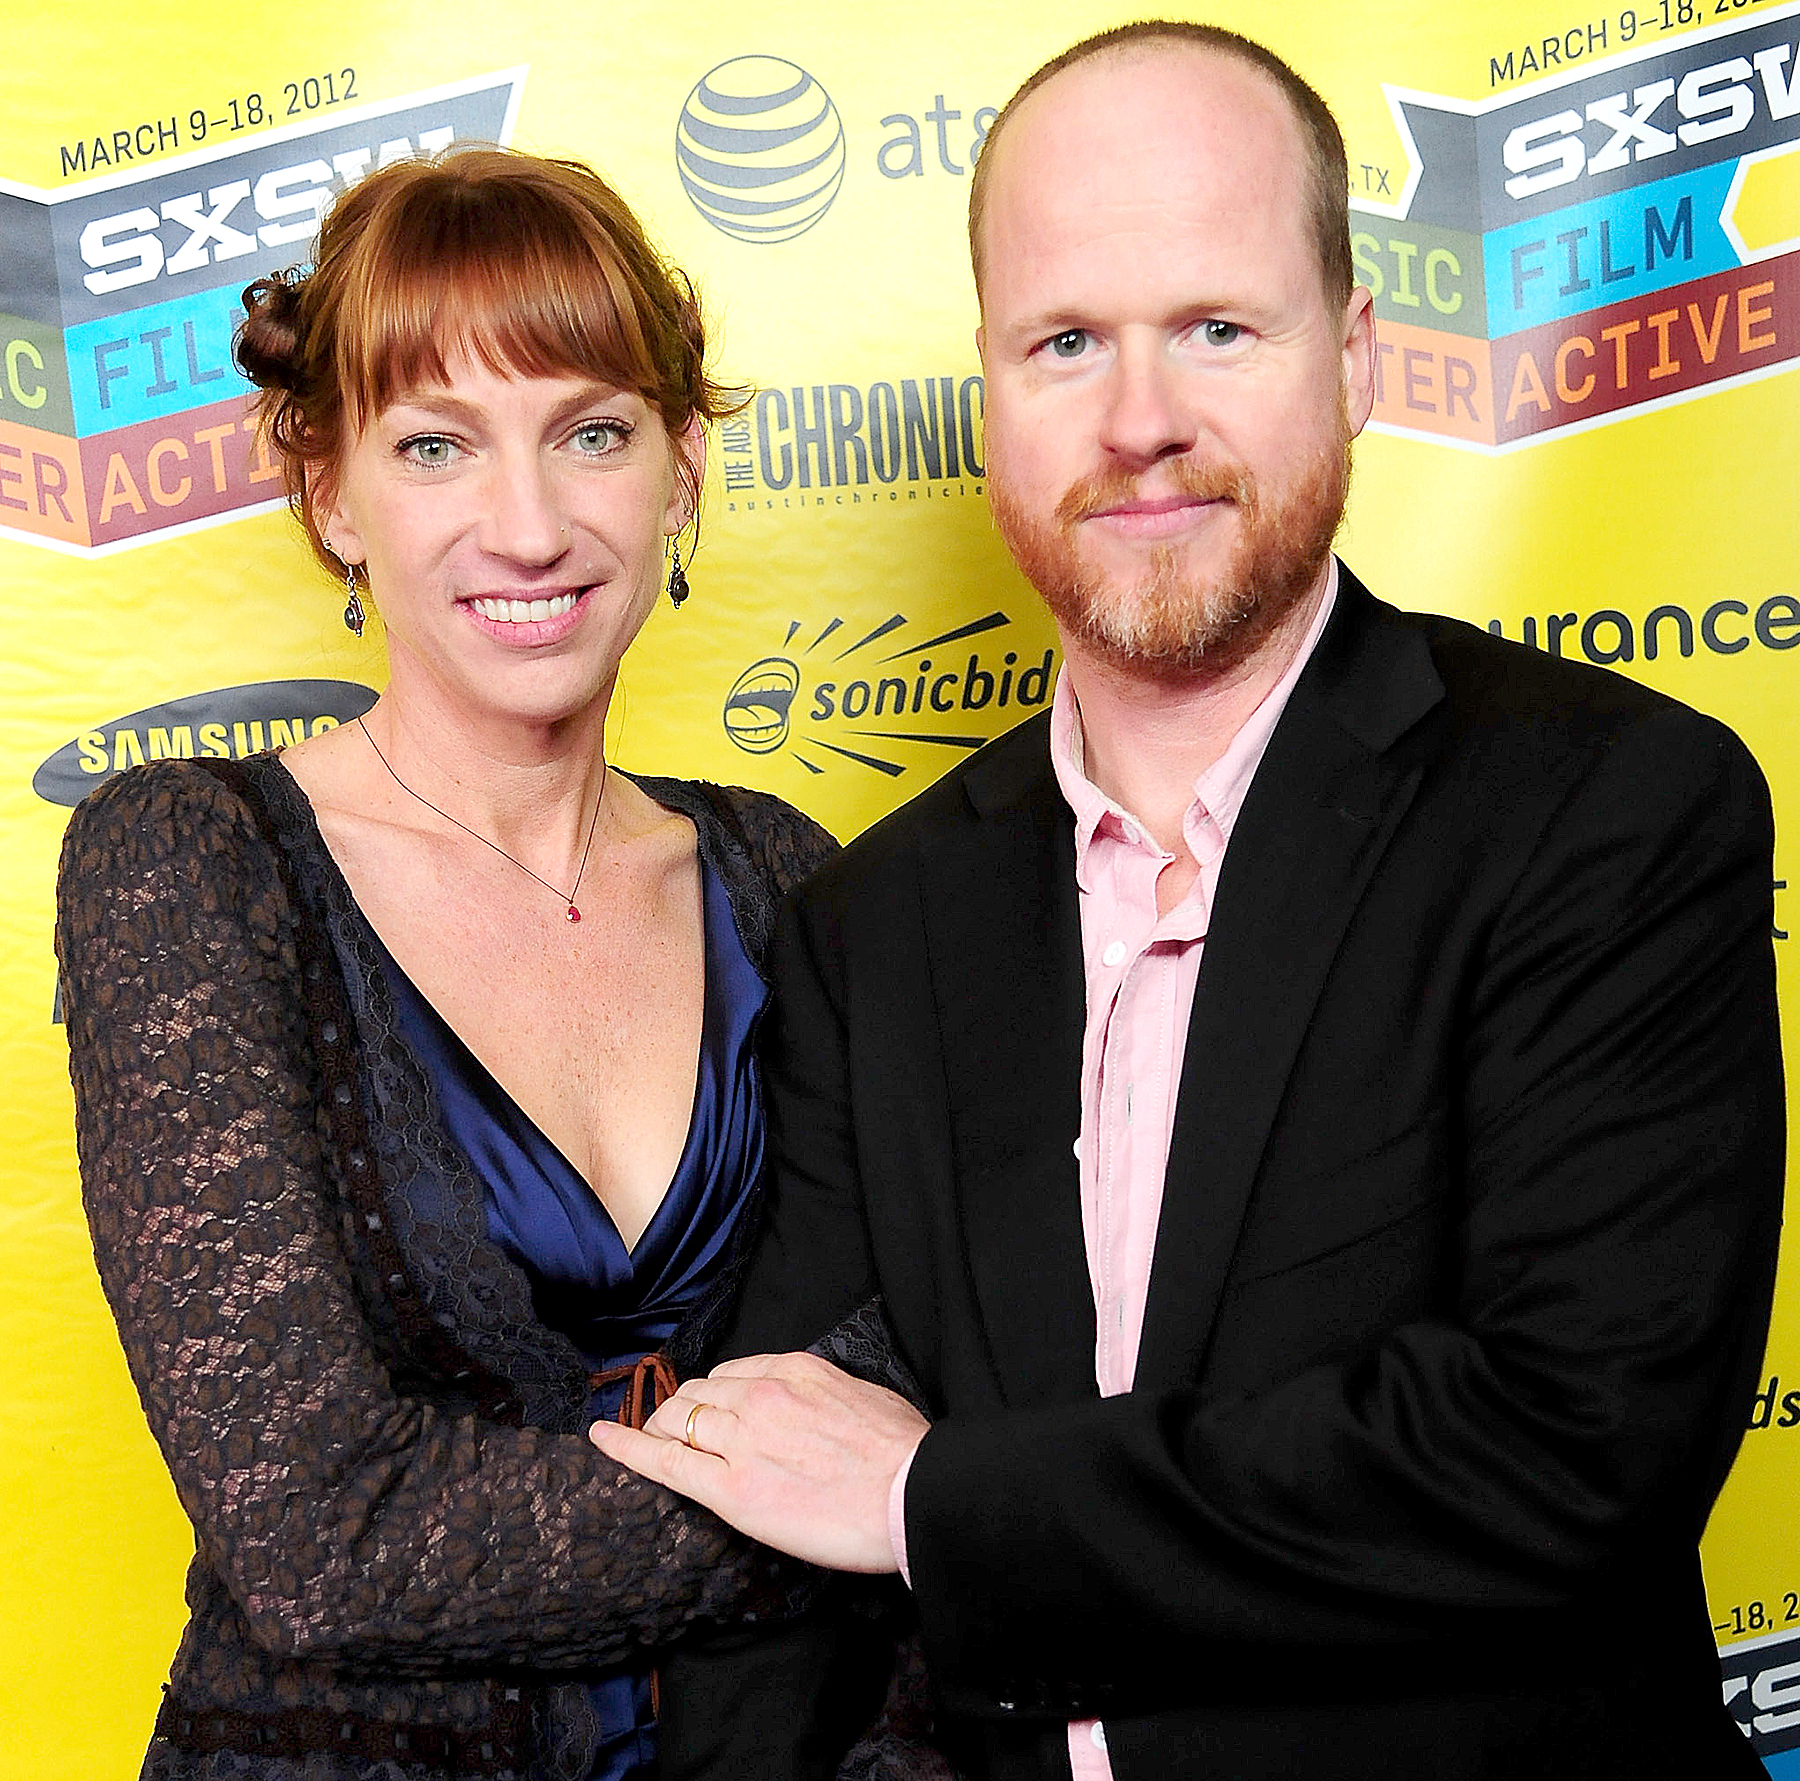 "Joss Whedon and Kai Cole attend the World Premiere of ""The Cabin in the Woods"" at Paramount Theatre on March 9, 2012 in Austin, Texas."